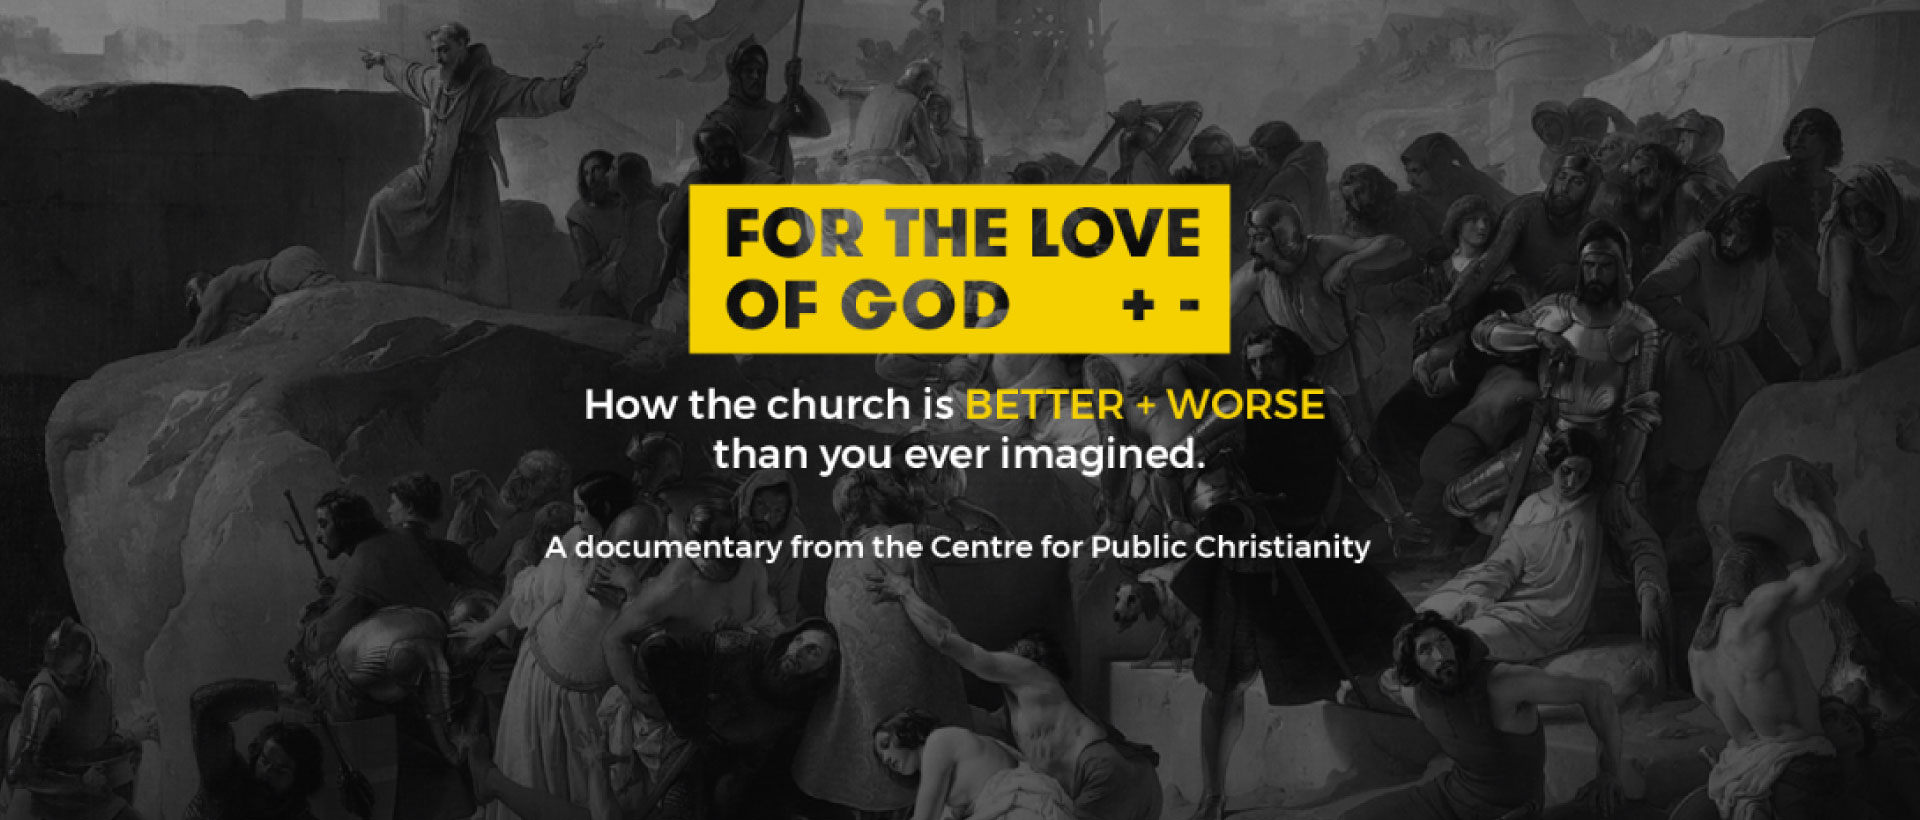 New Documentary Reckons with Christianity's Spotty History